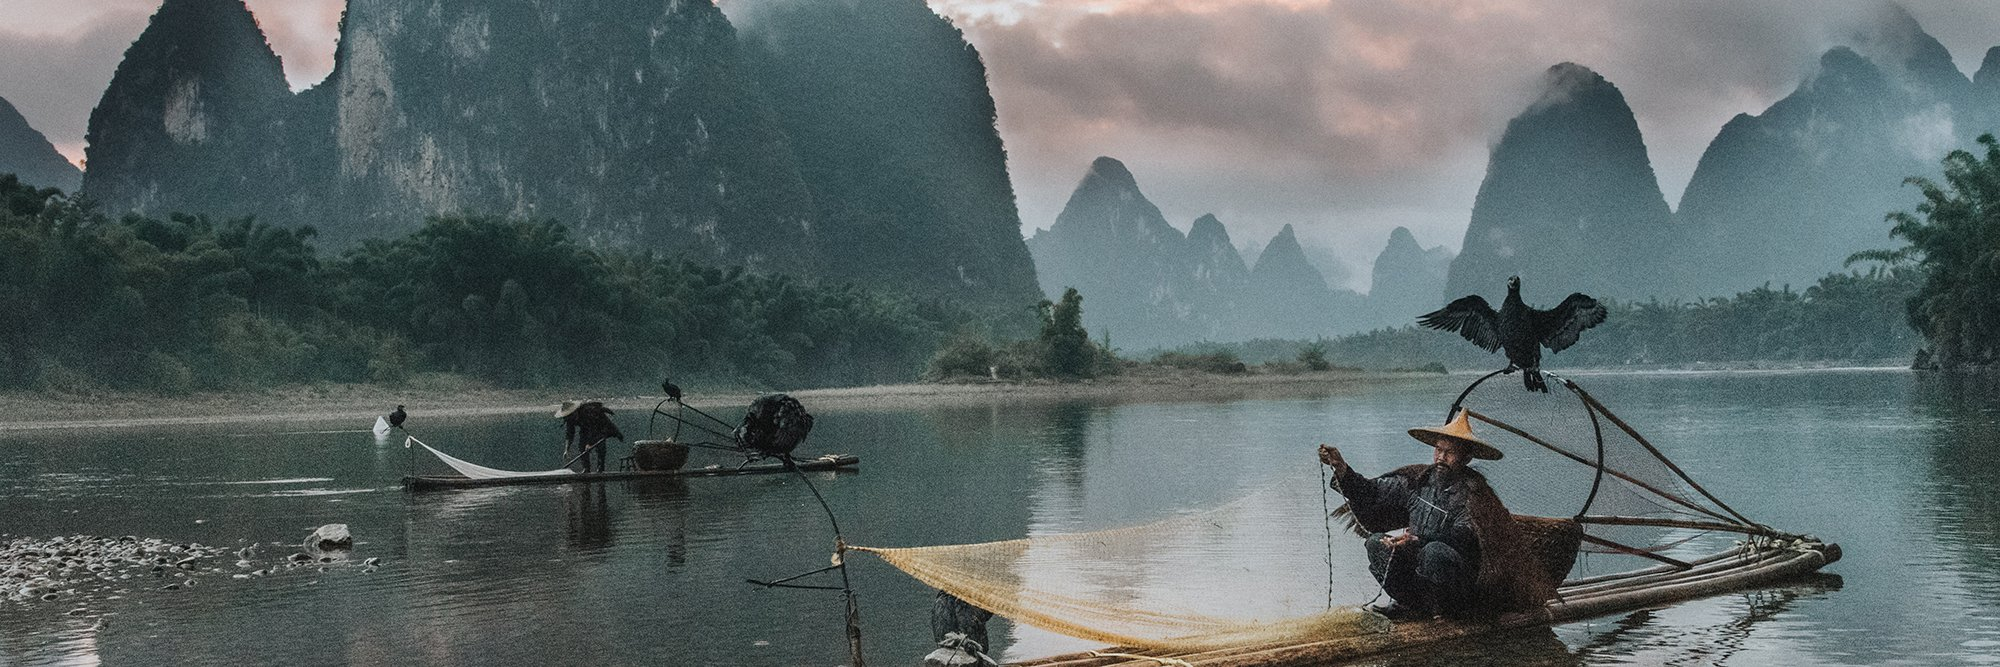 Sunset on the Li River as the few remaining cormorant fisherman pack